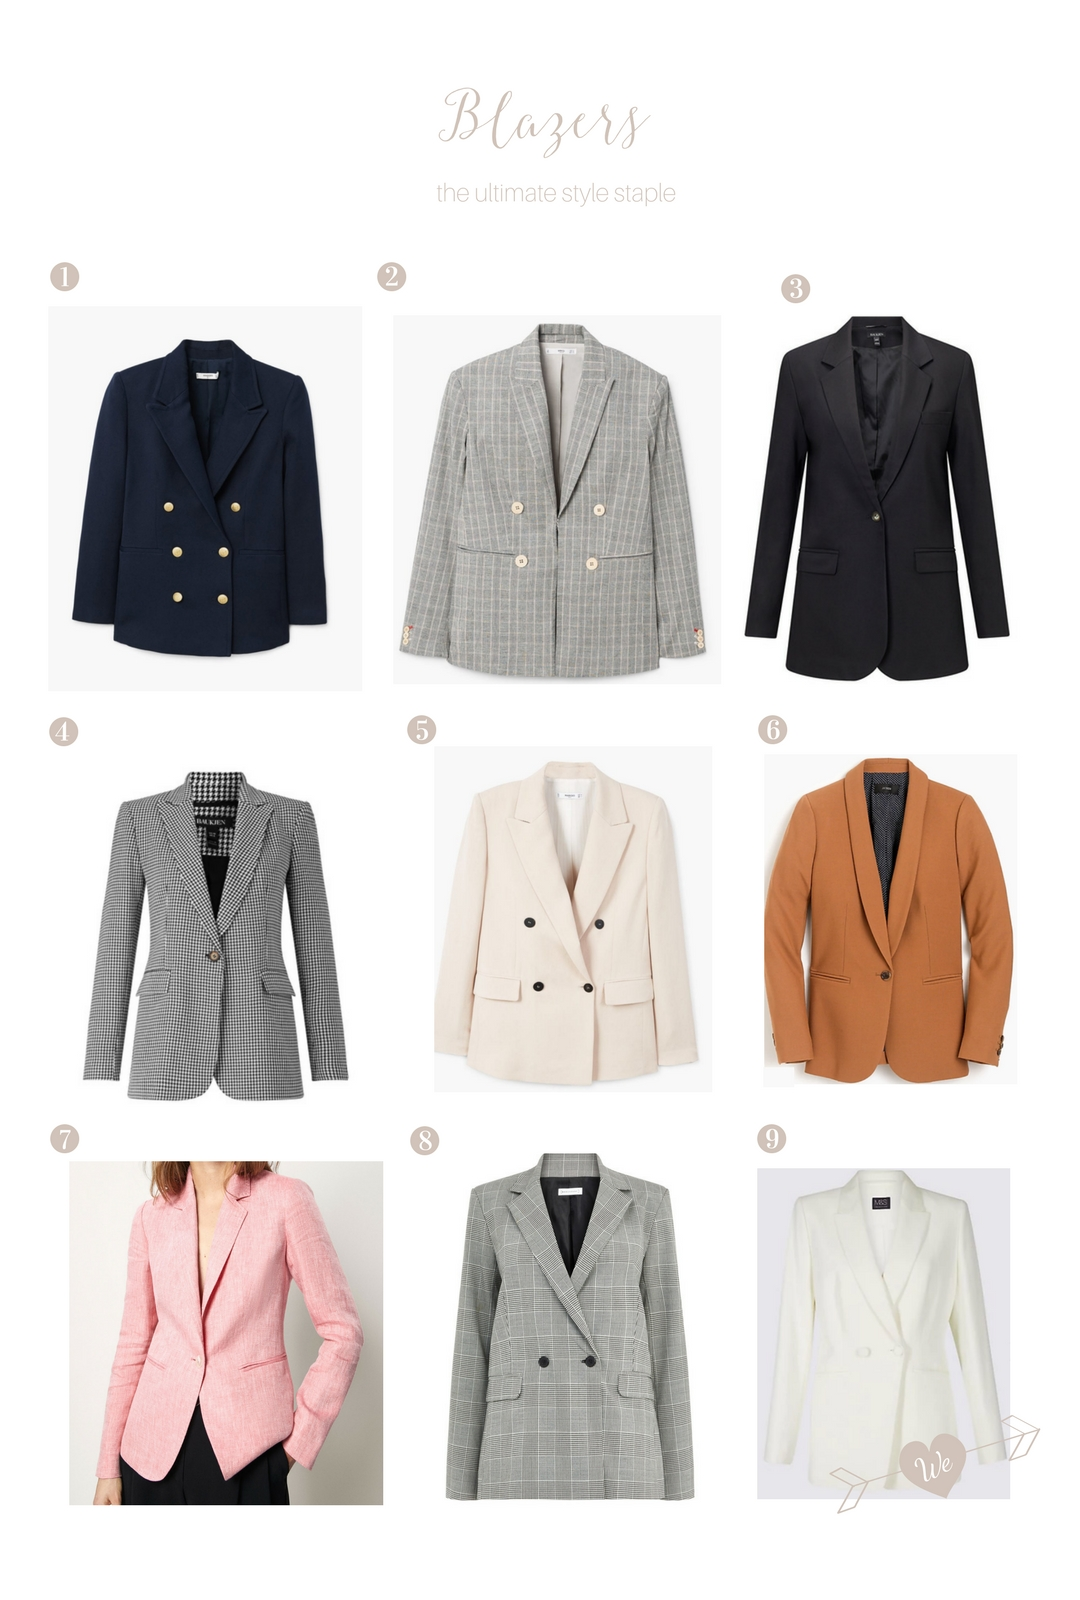 Style staple: the blazer